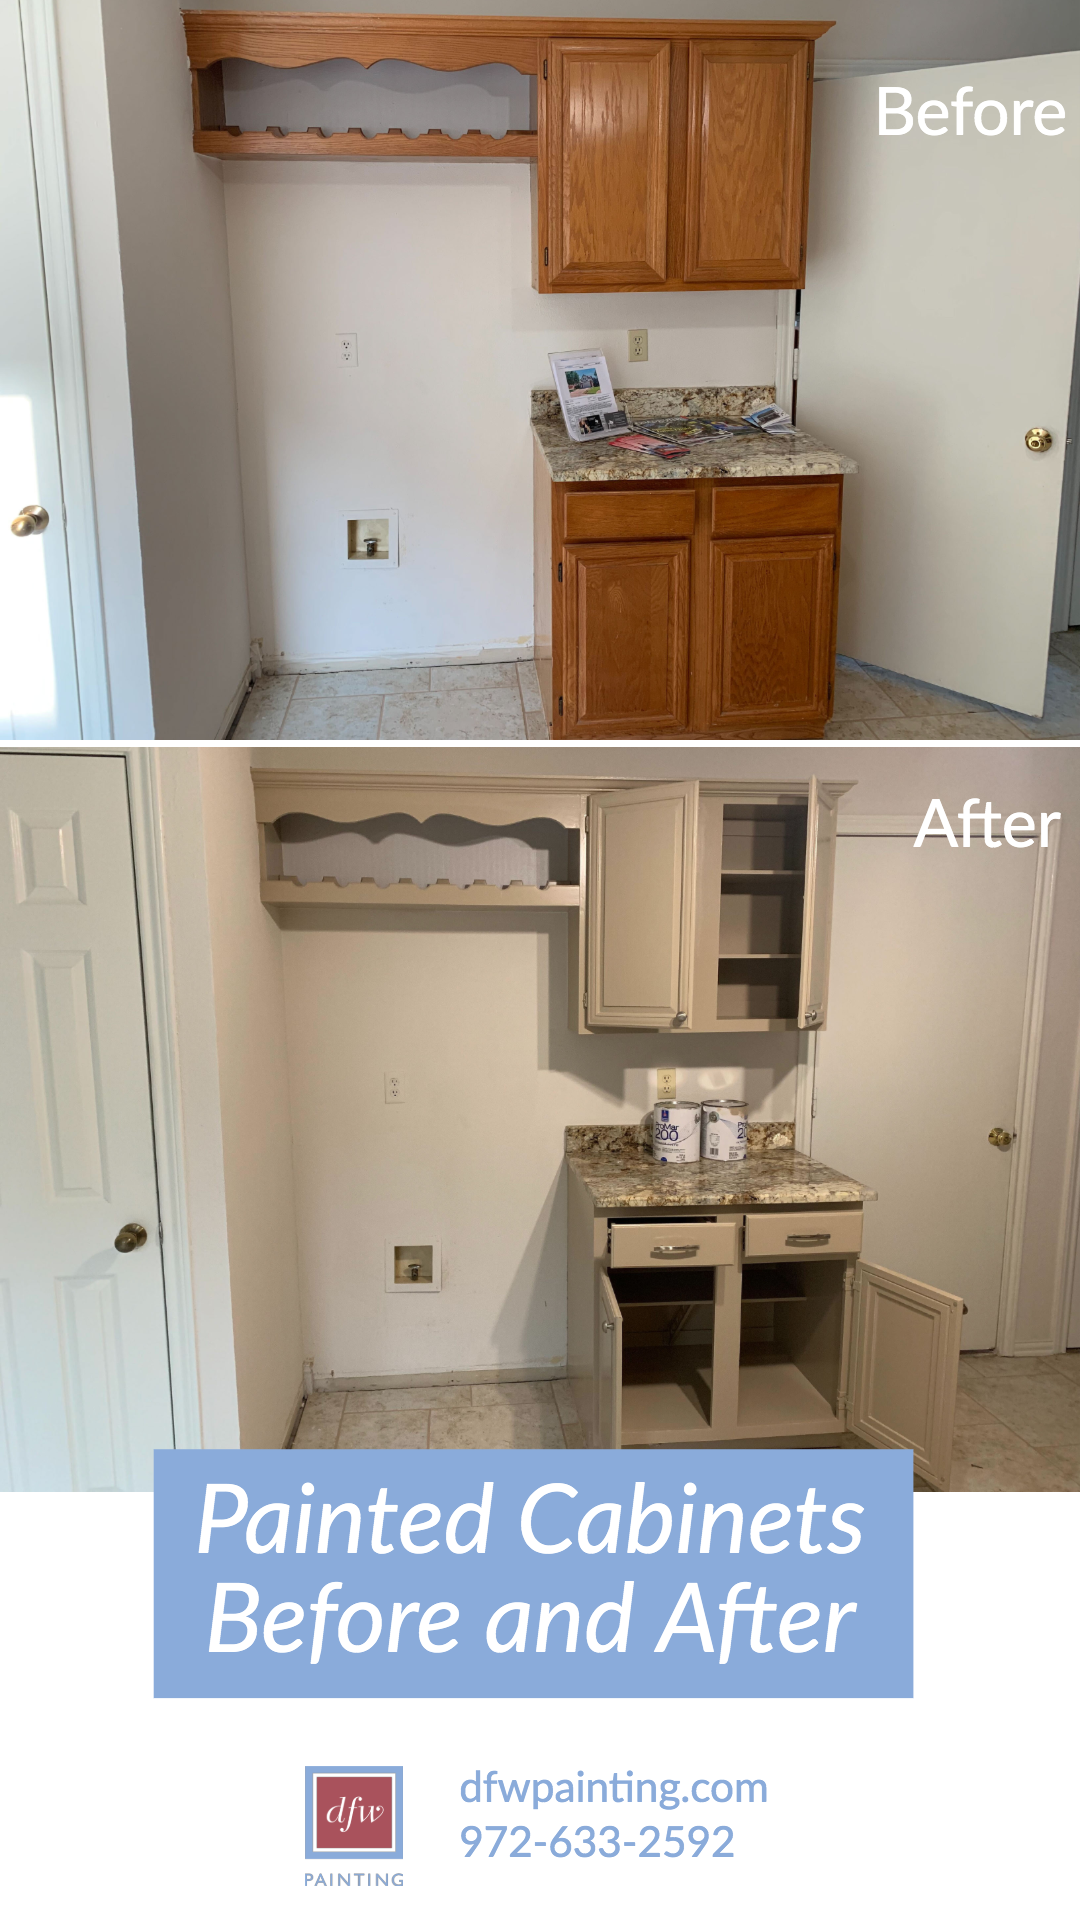 Painted Cabinets Before And After Dfw Painting Painting Cabinets Cabinet Refinishing Cabinets